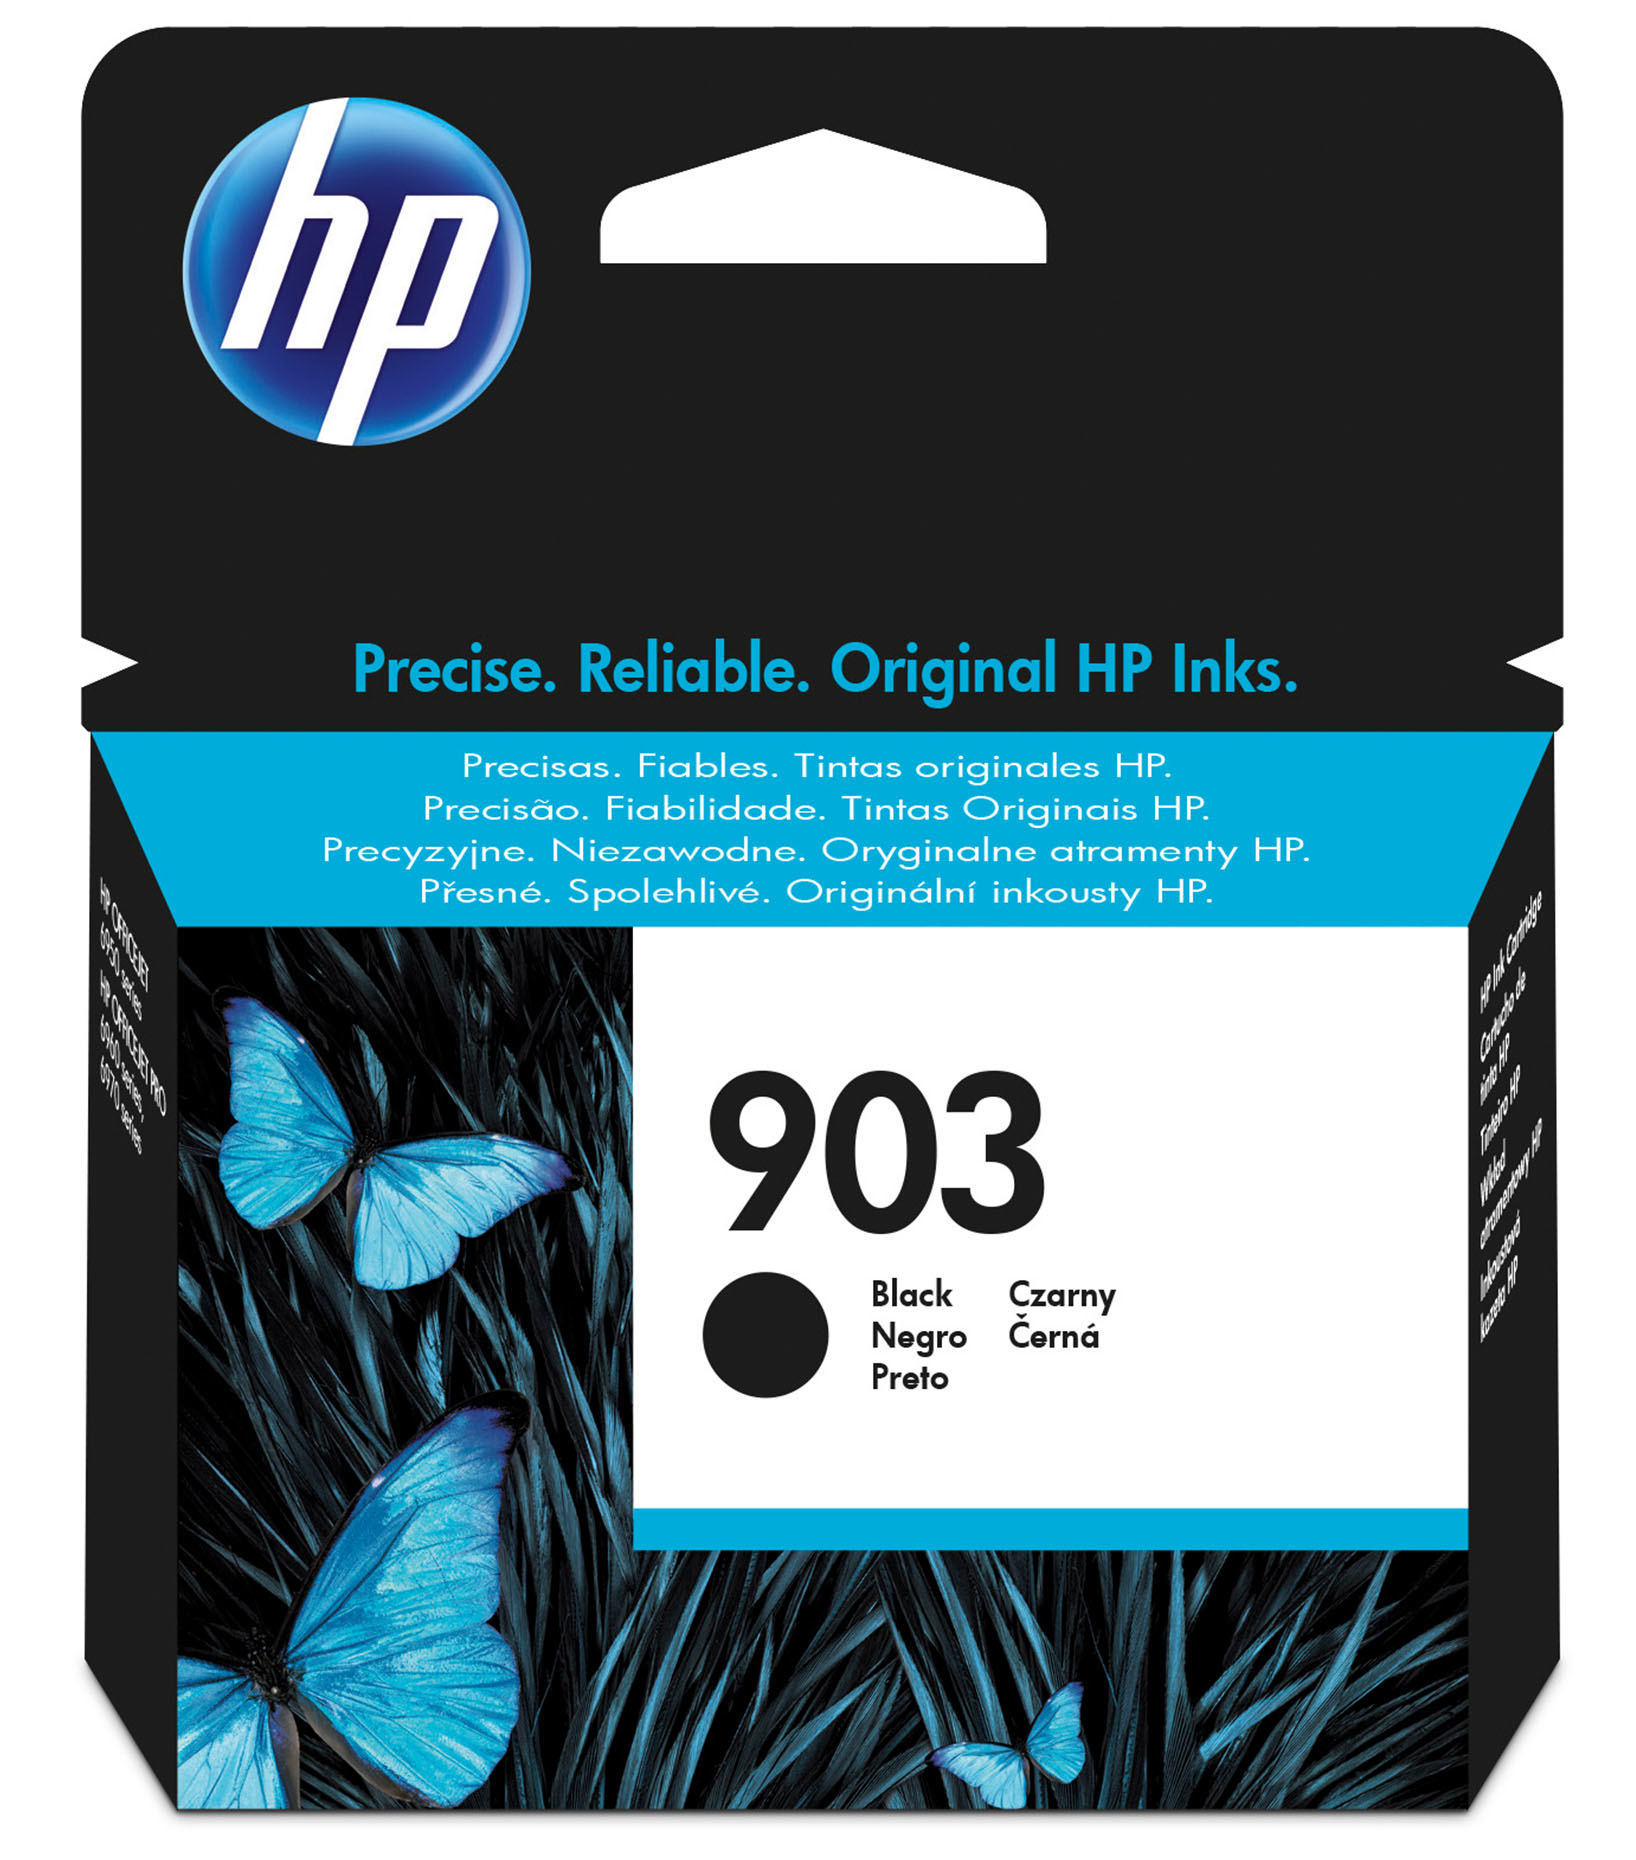 Hpt6l99ae      Hp 903 Black Ink Cartridge     Hp 903 Black Ink Cartridge                                   - UF01